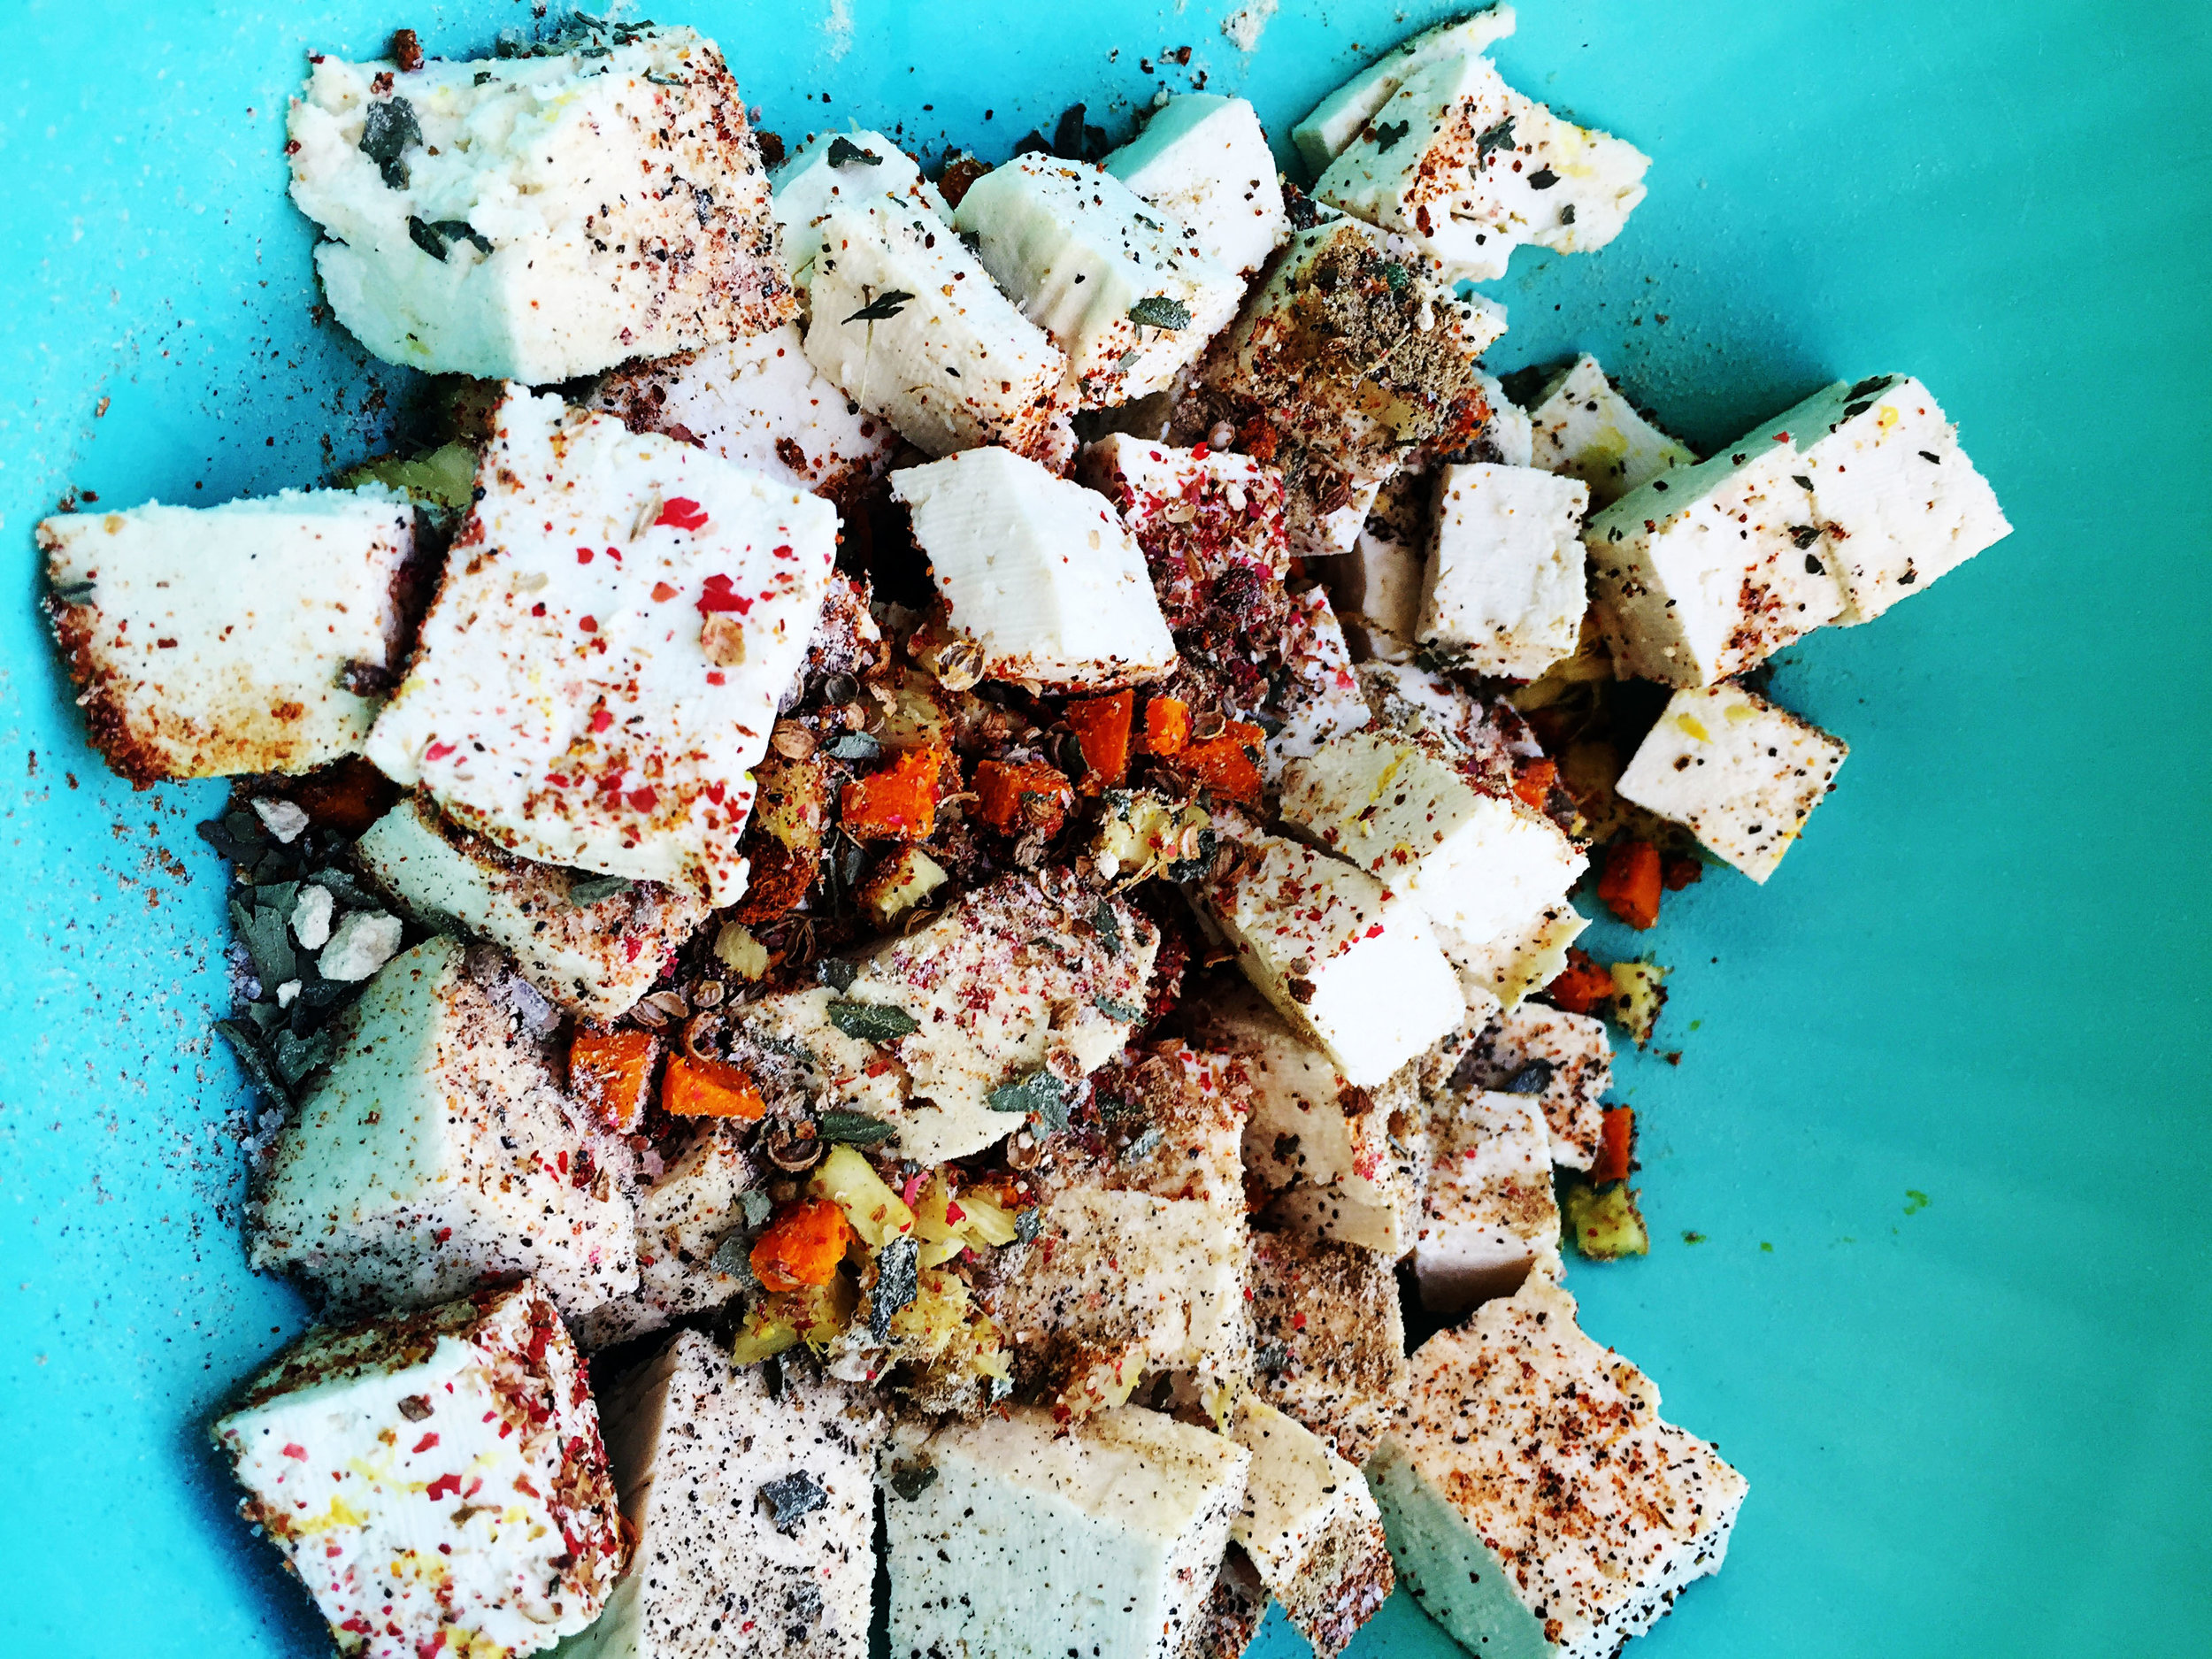 6. Put tofu, sauteed ingredients, and the rest of all spices into a mixing bowl and stir well. Place back into the pan, turn down heat a bit and saute for 6-8 minutes until tofu starts to brown and crisp on he sides.